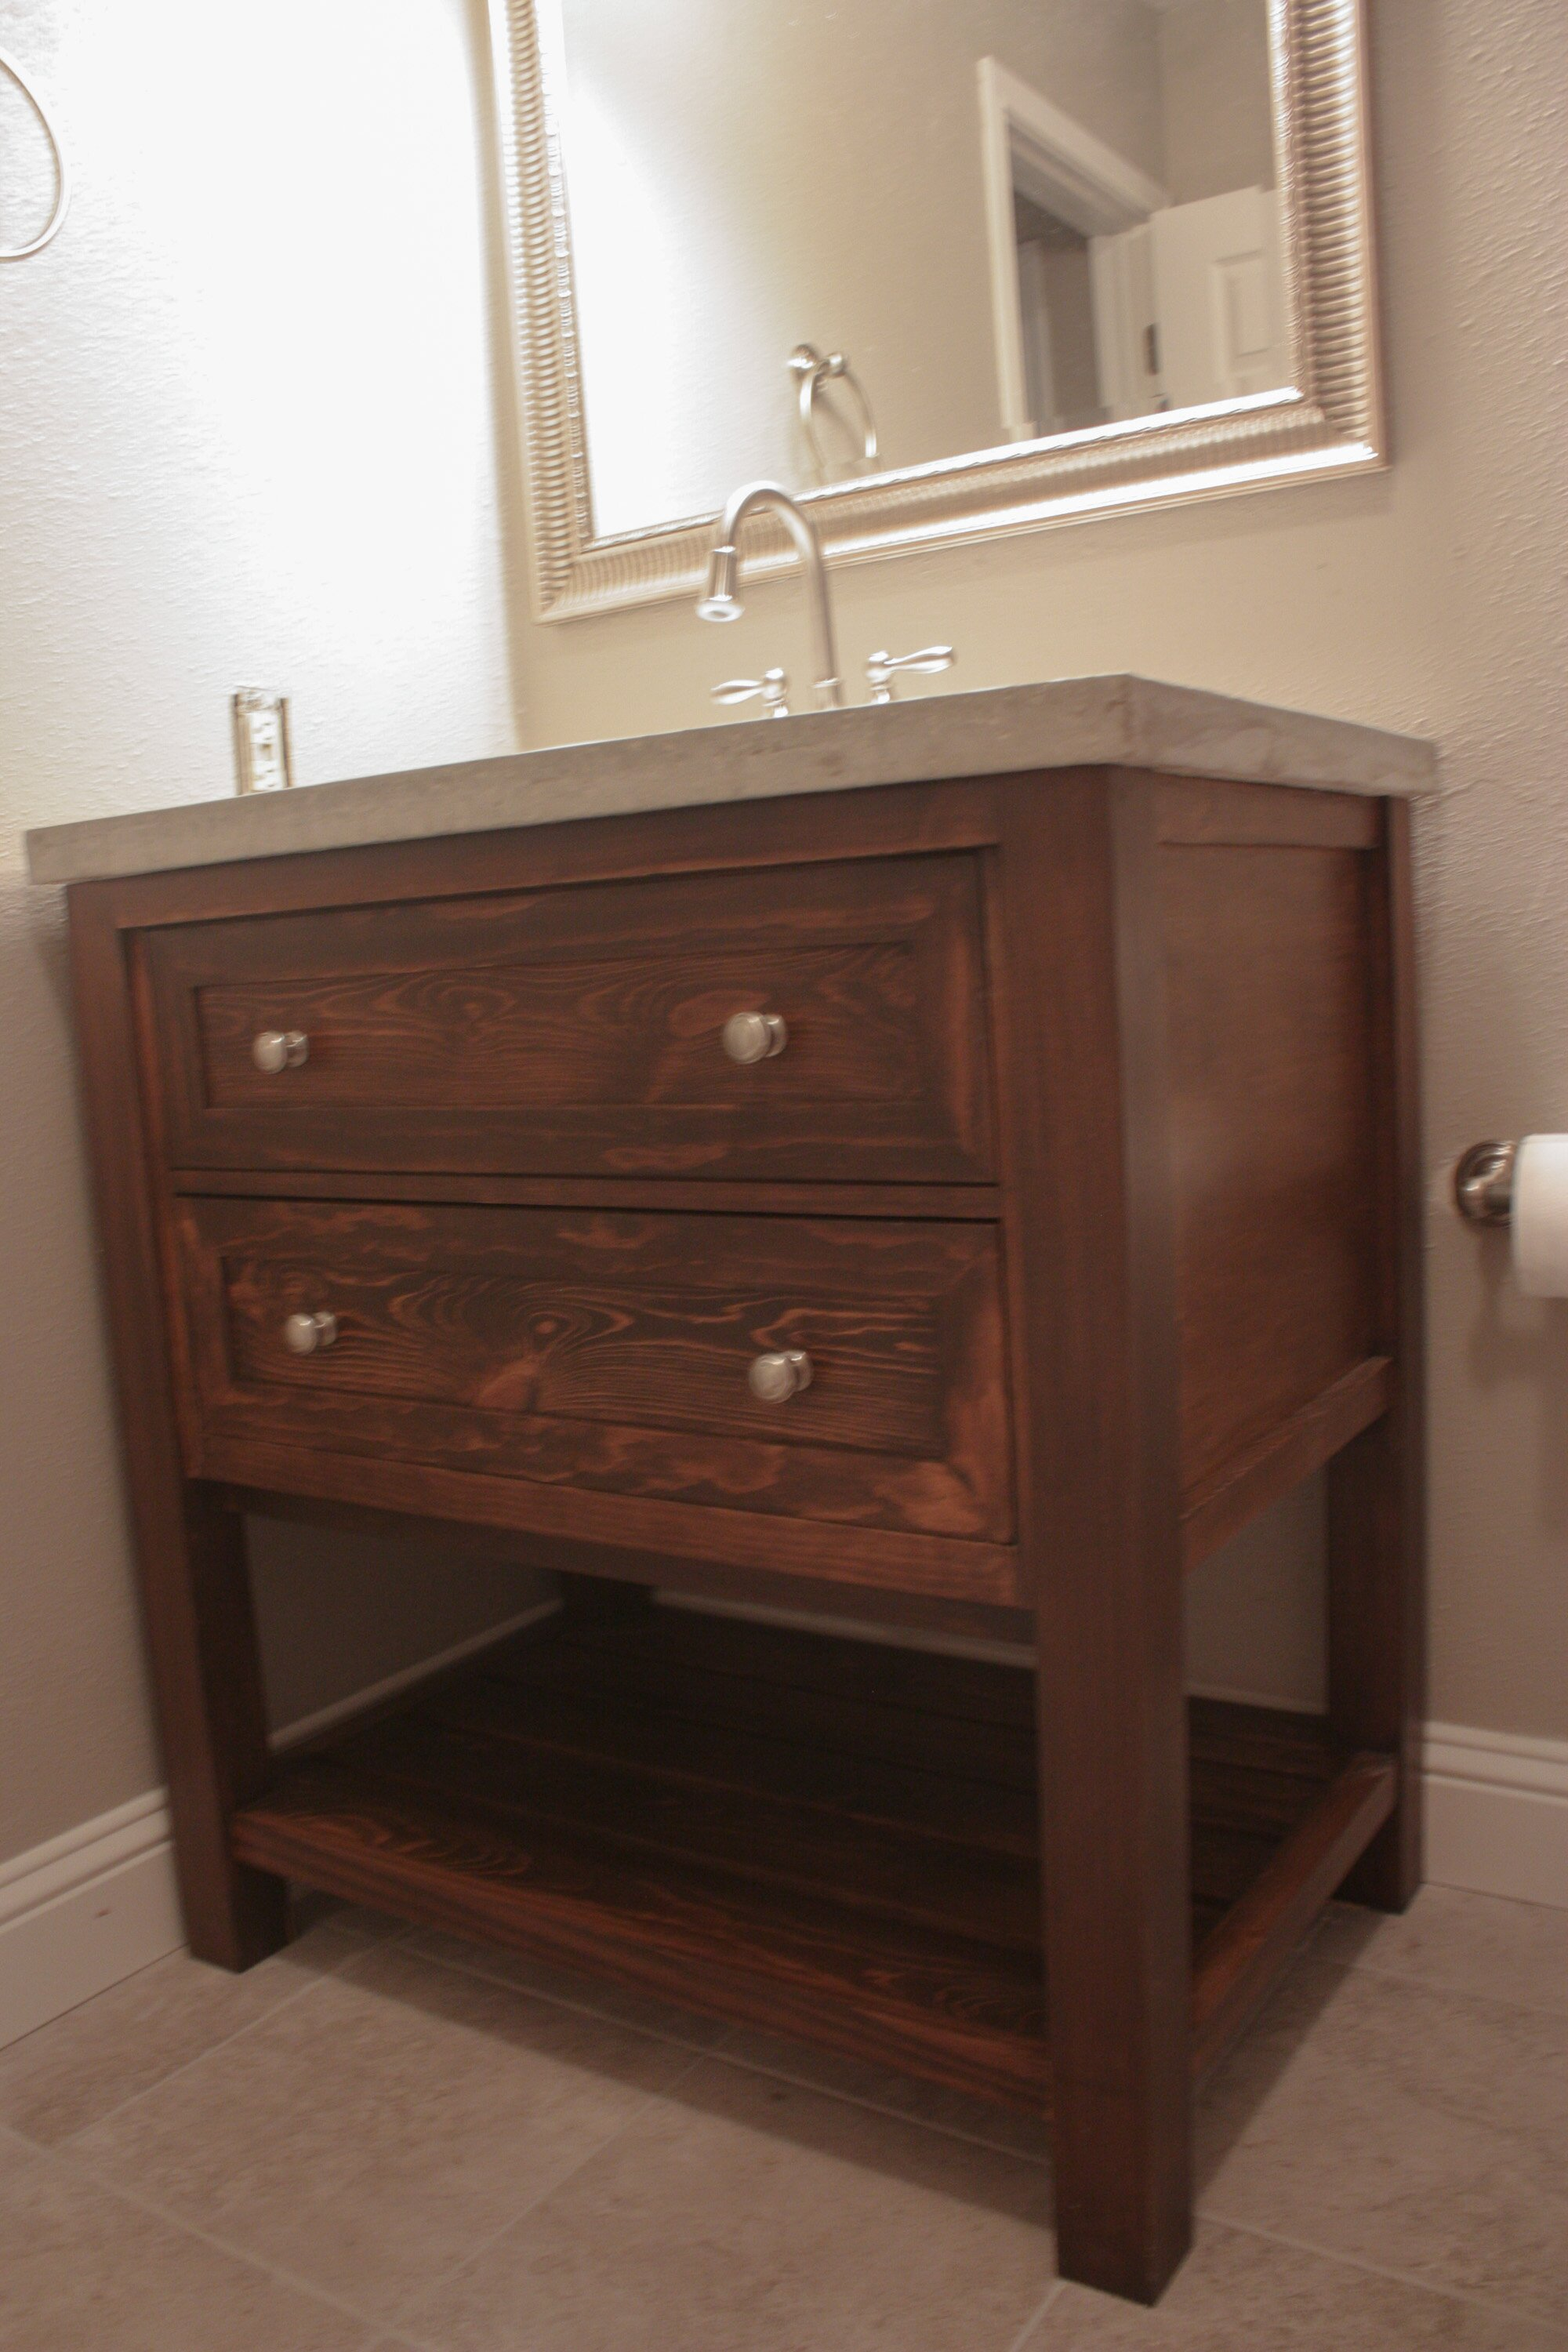 Bathroom pottery barn vanity for bathroom cabinet design for Restoration hardware bathroom cabinets